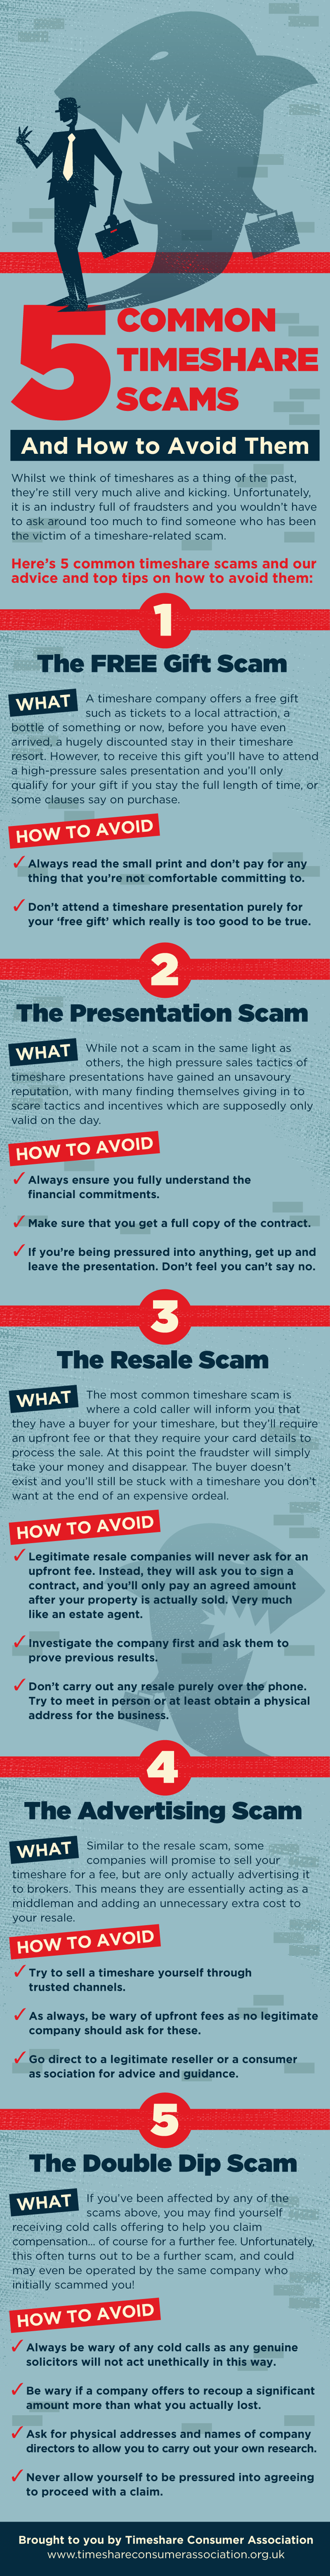 5 Common Timeshare Scams & How To Avoid Them